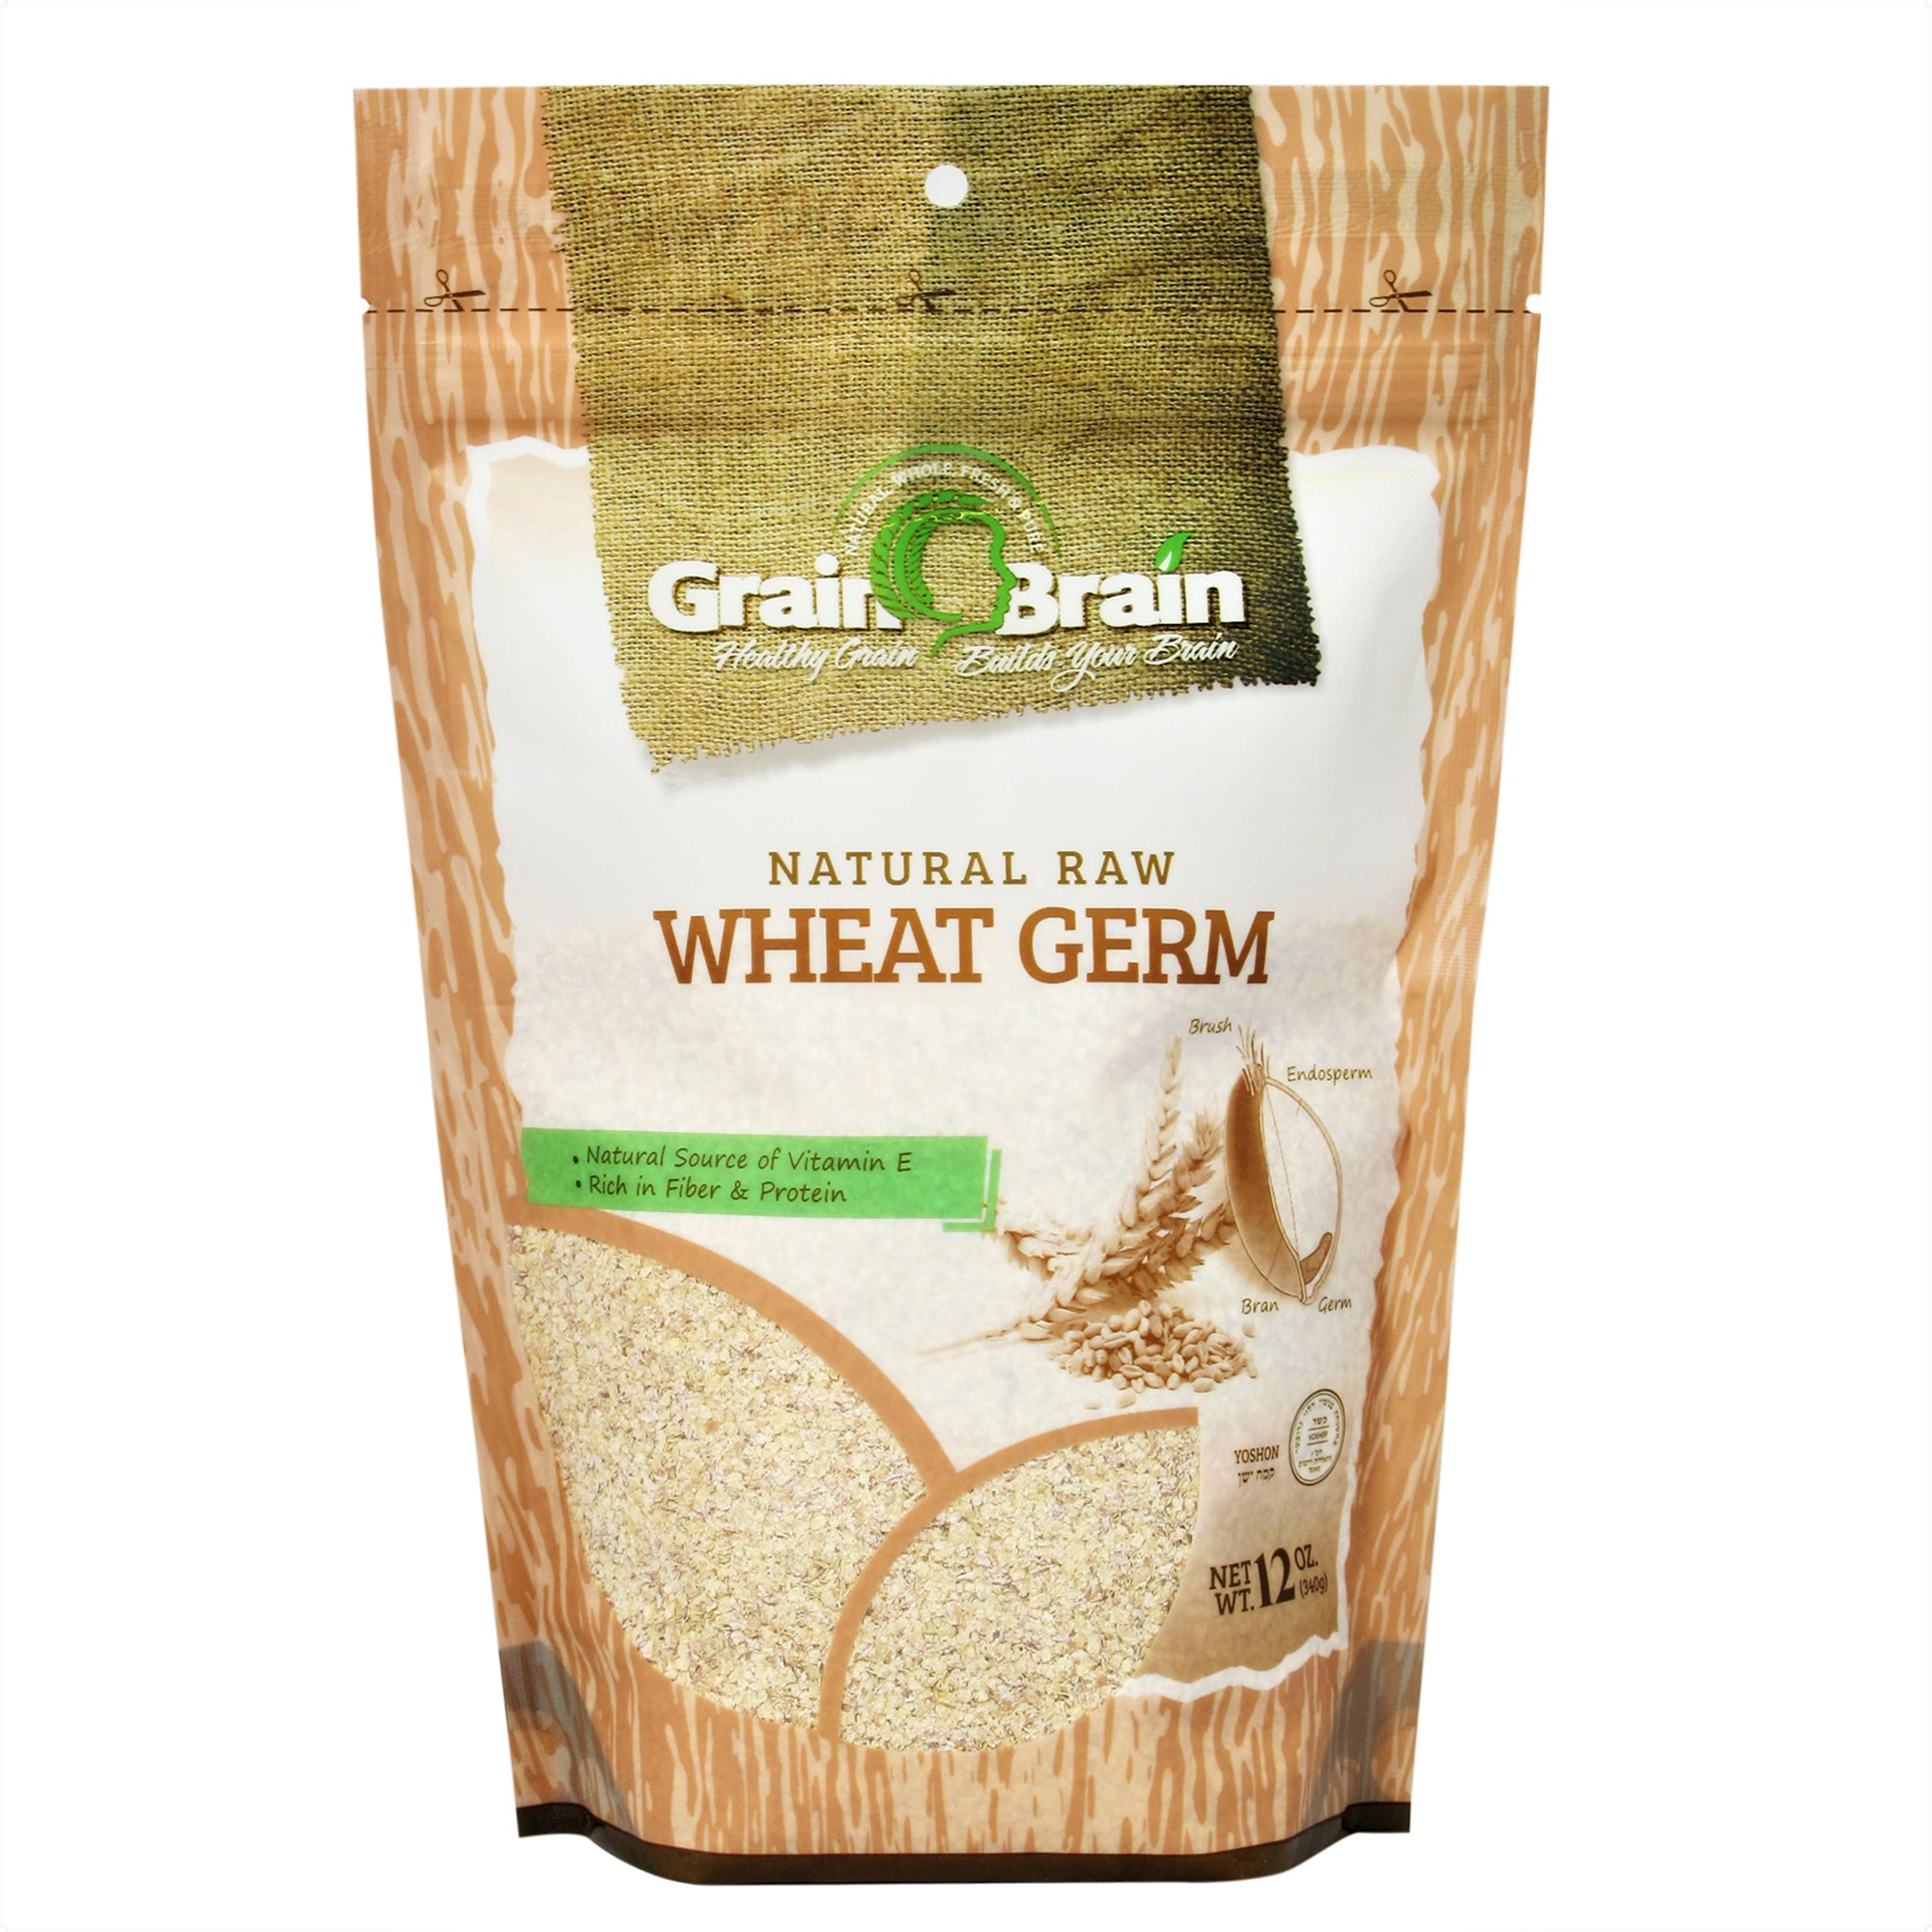 Grain Brain Wheat Germ 12 oz (12 oz) Raw, All natural, Untoasted. Packaged in Resealable Pouch bags for easy use